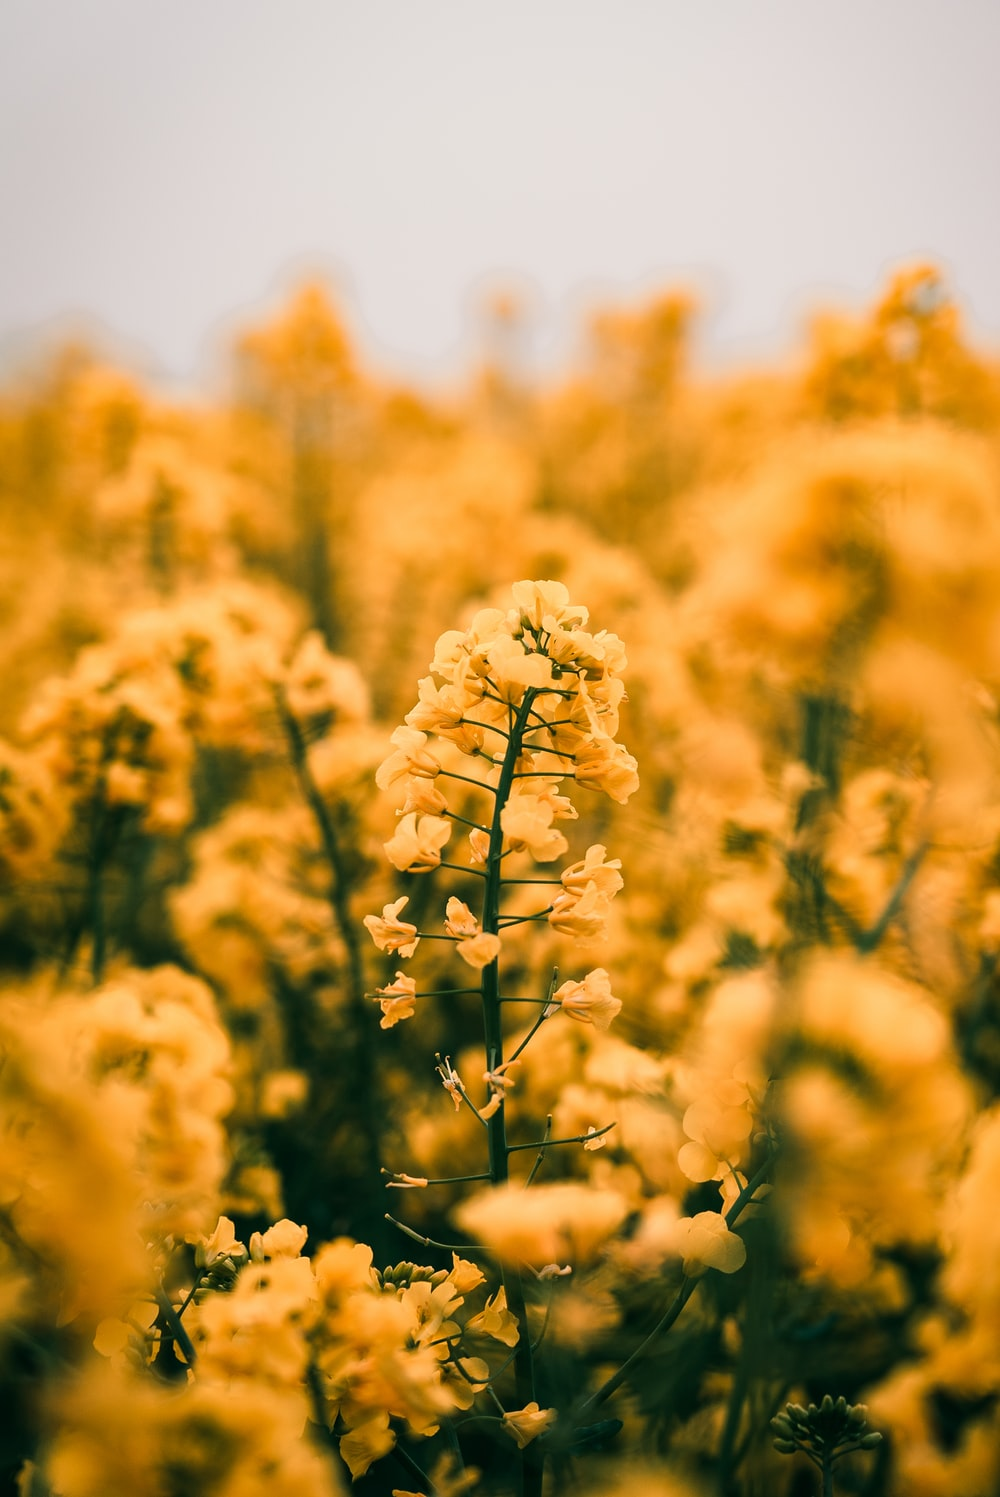 yellow clustered flowers in soft focus photography